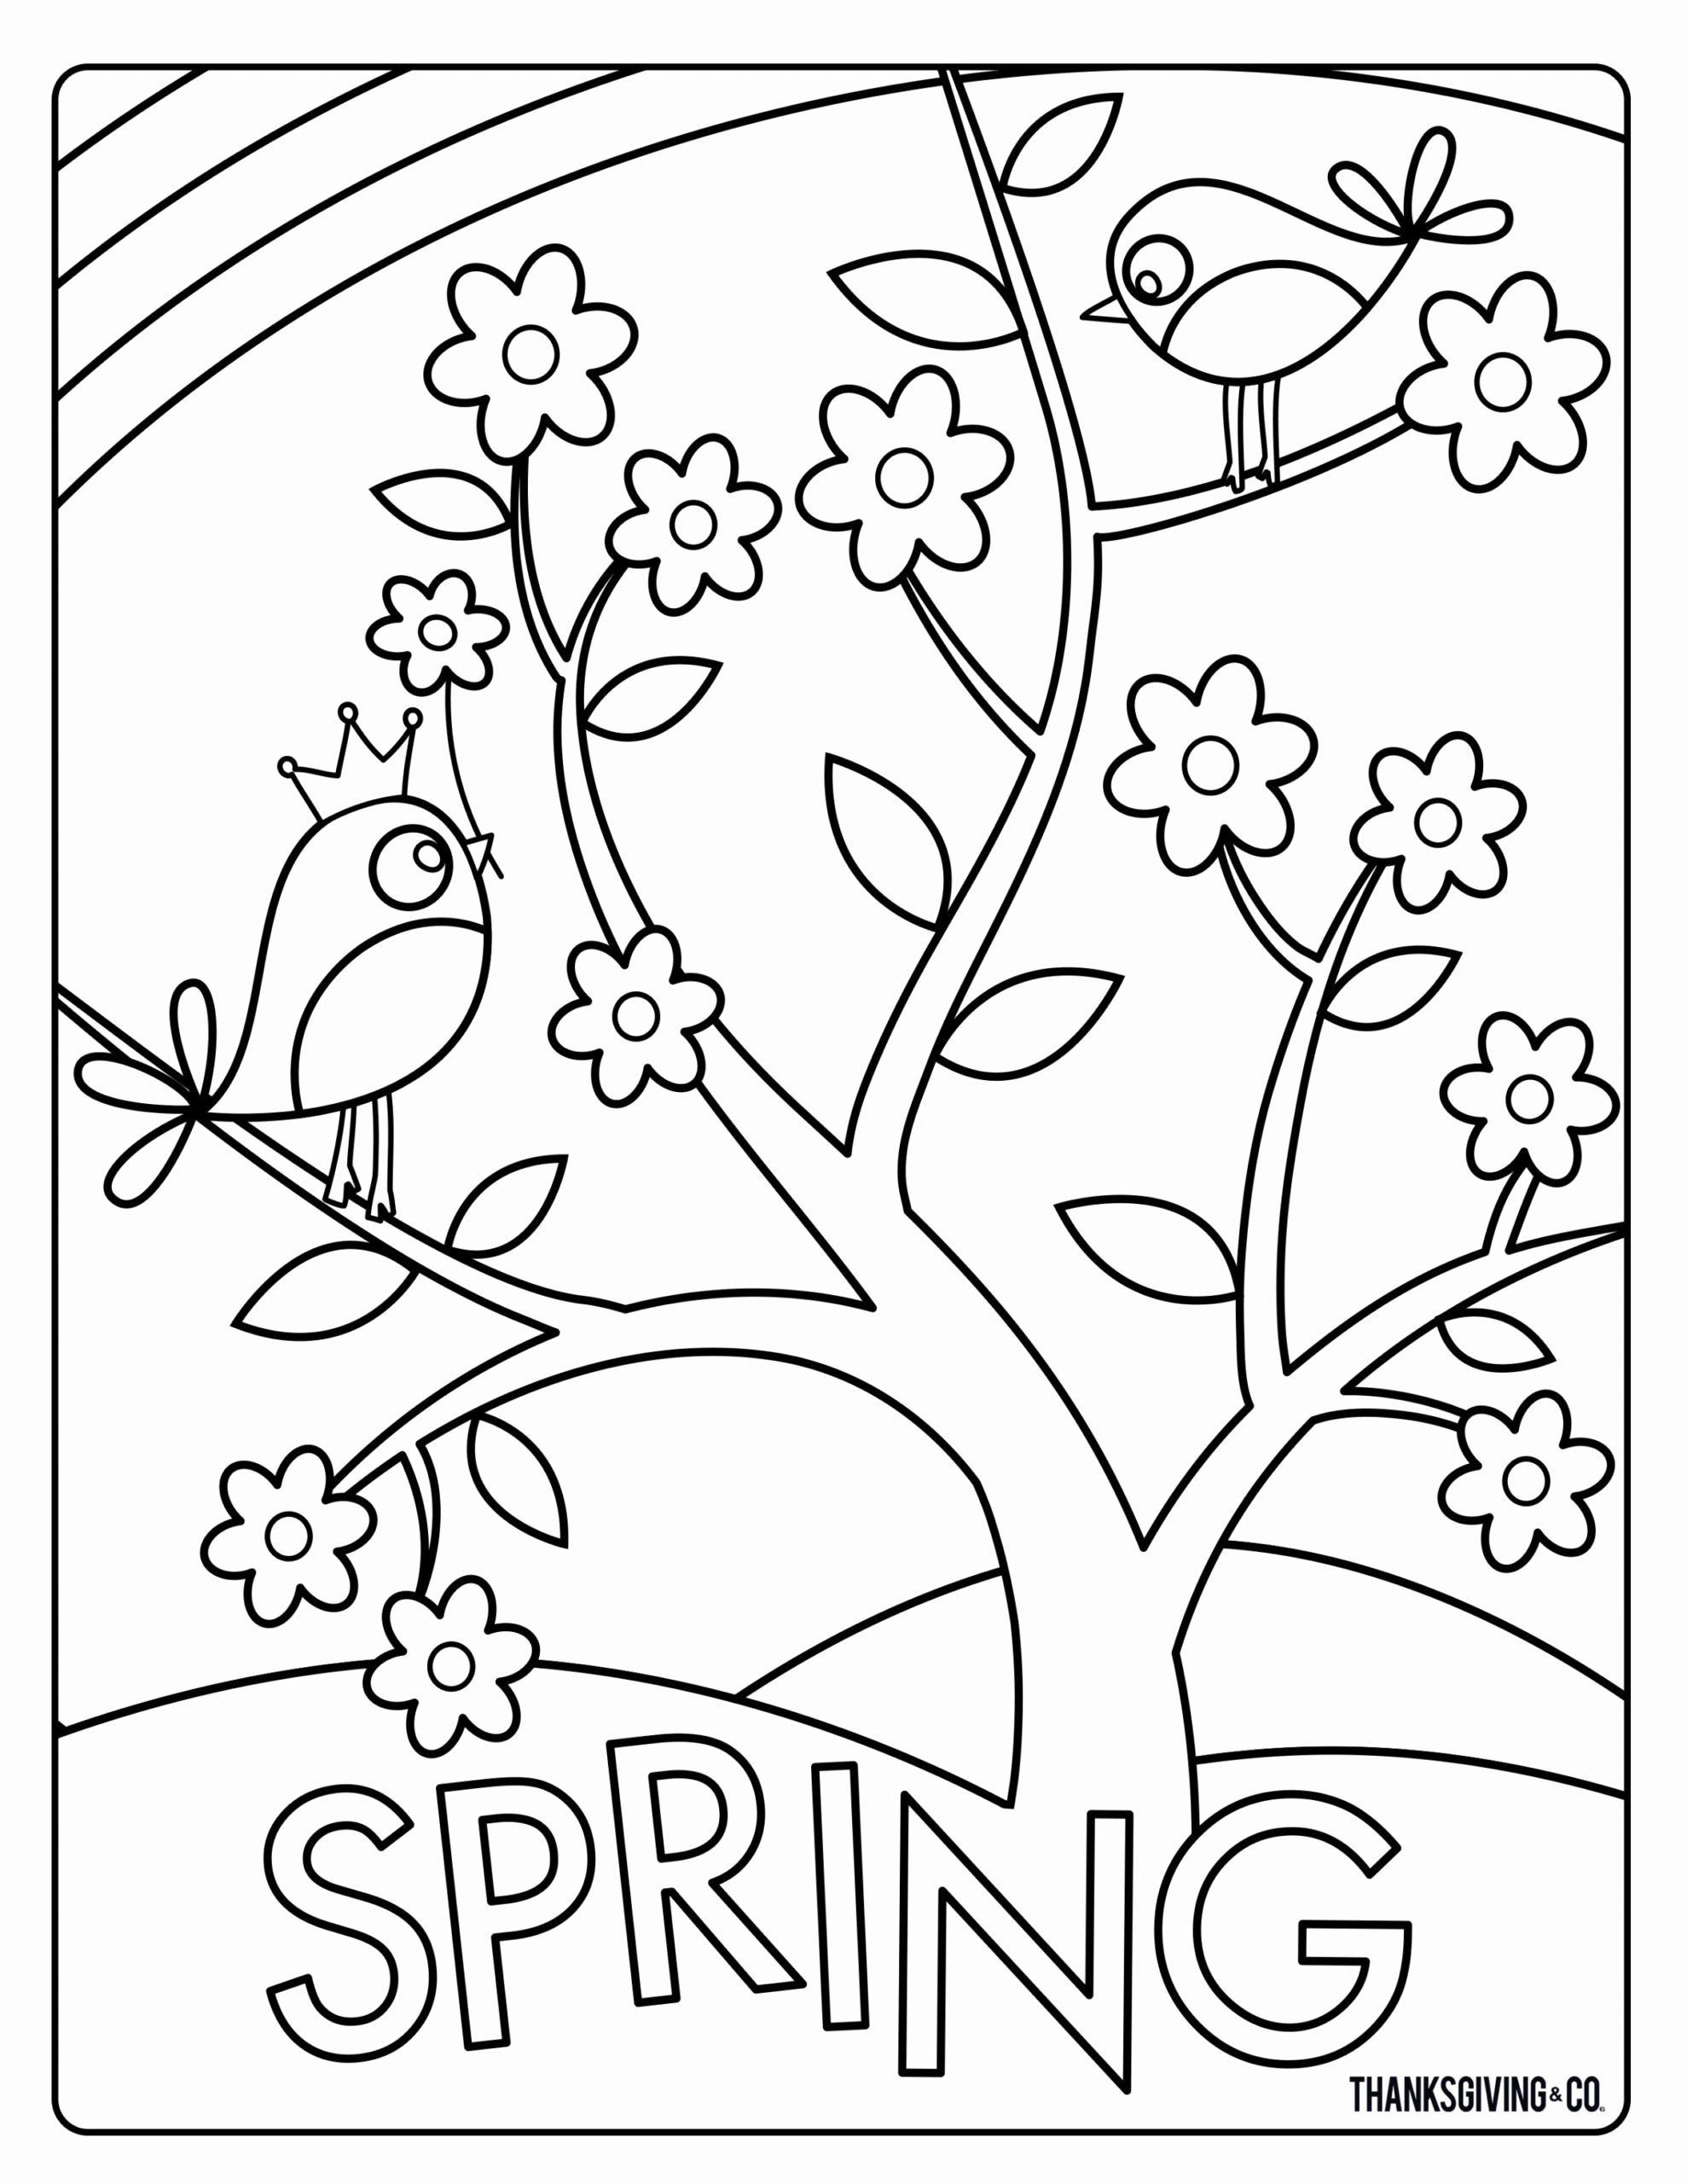 Spring Worksheets for Preschoolers Lovely Spring Coloring Sheets for toddlers Coloringheets Happy Kids